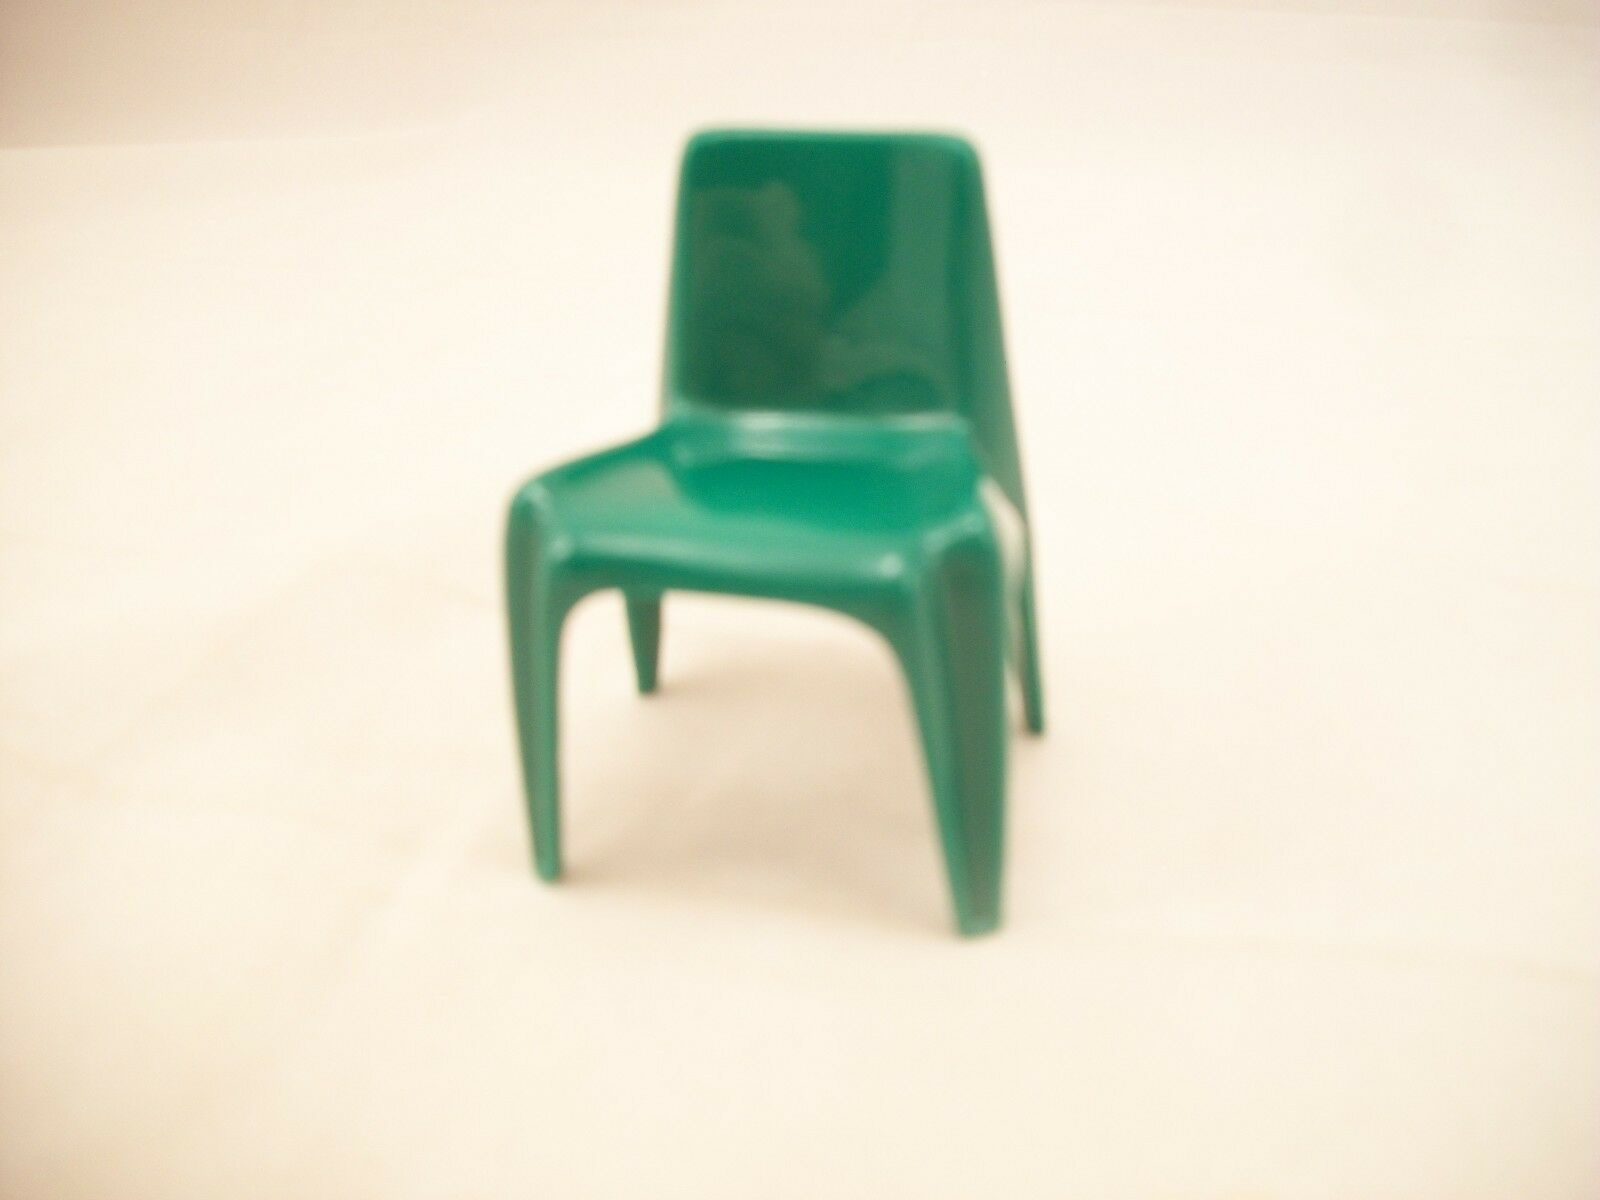 Chair - Bofinger by Helmut Bätzner 12 1964  classic miniature REC014 1 12 Bätzner scale eb93a5